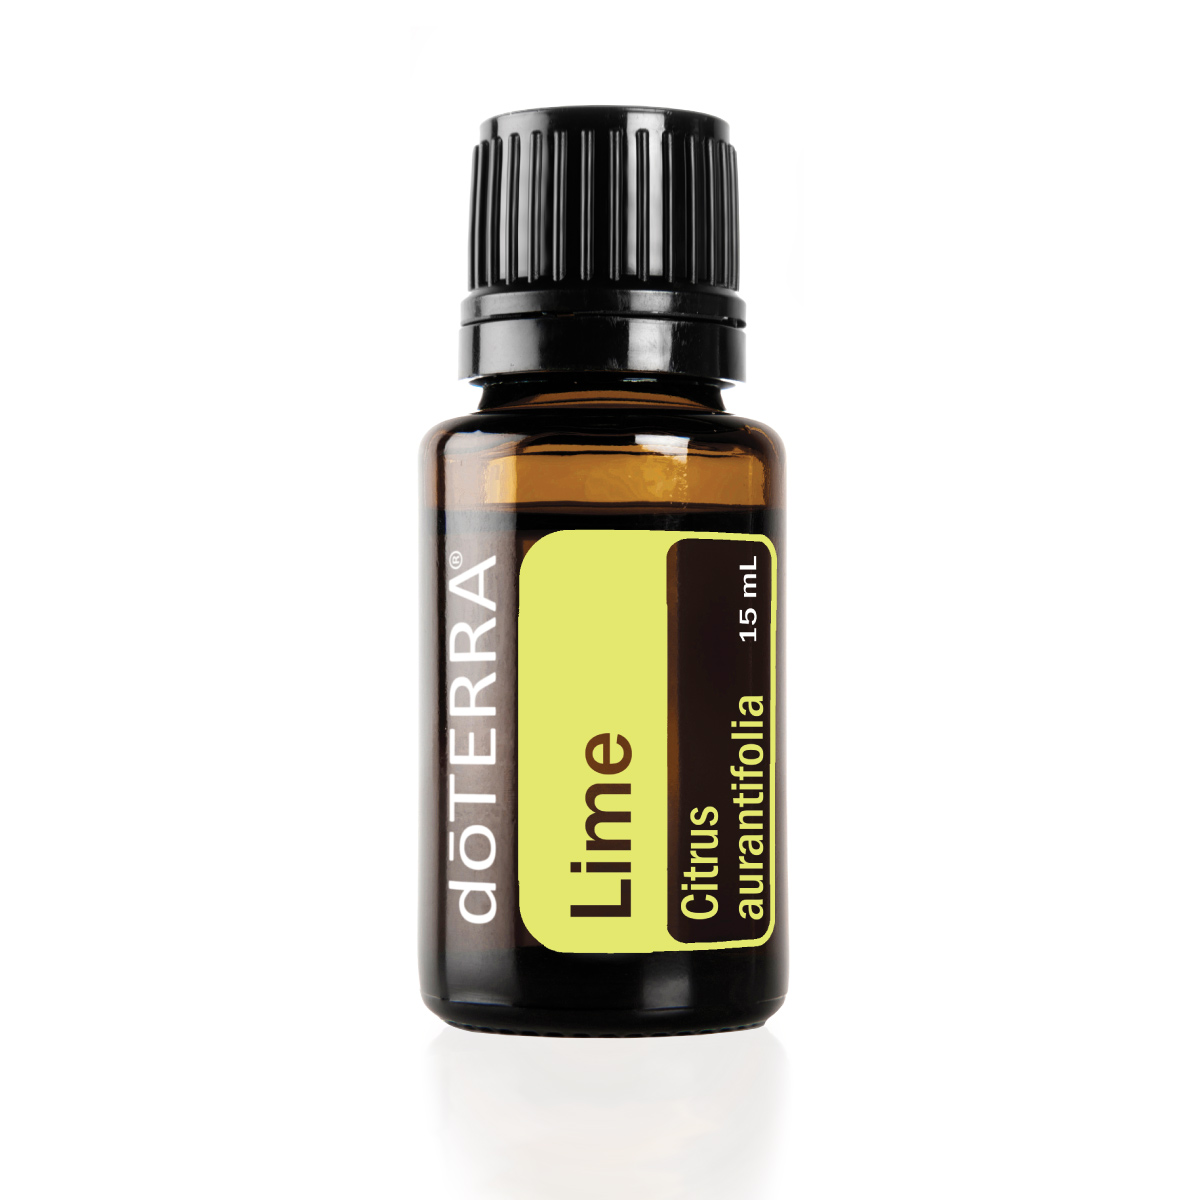 Bottle of doTERRA Lime oil. What is Lime oil used for? Lime essential oil is used for household cleaning, skincare, internal health benefits, and to uplift the mood.